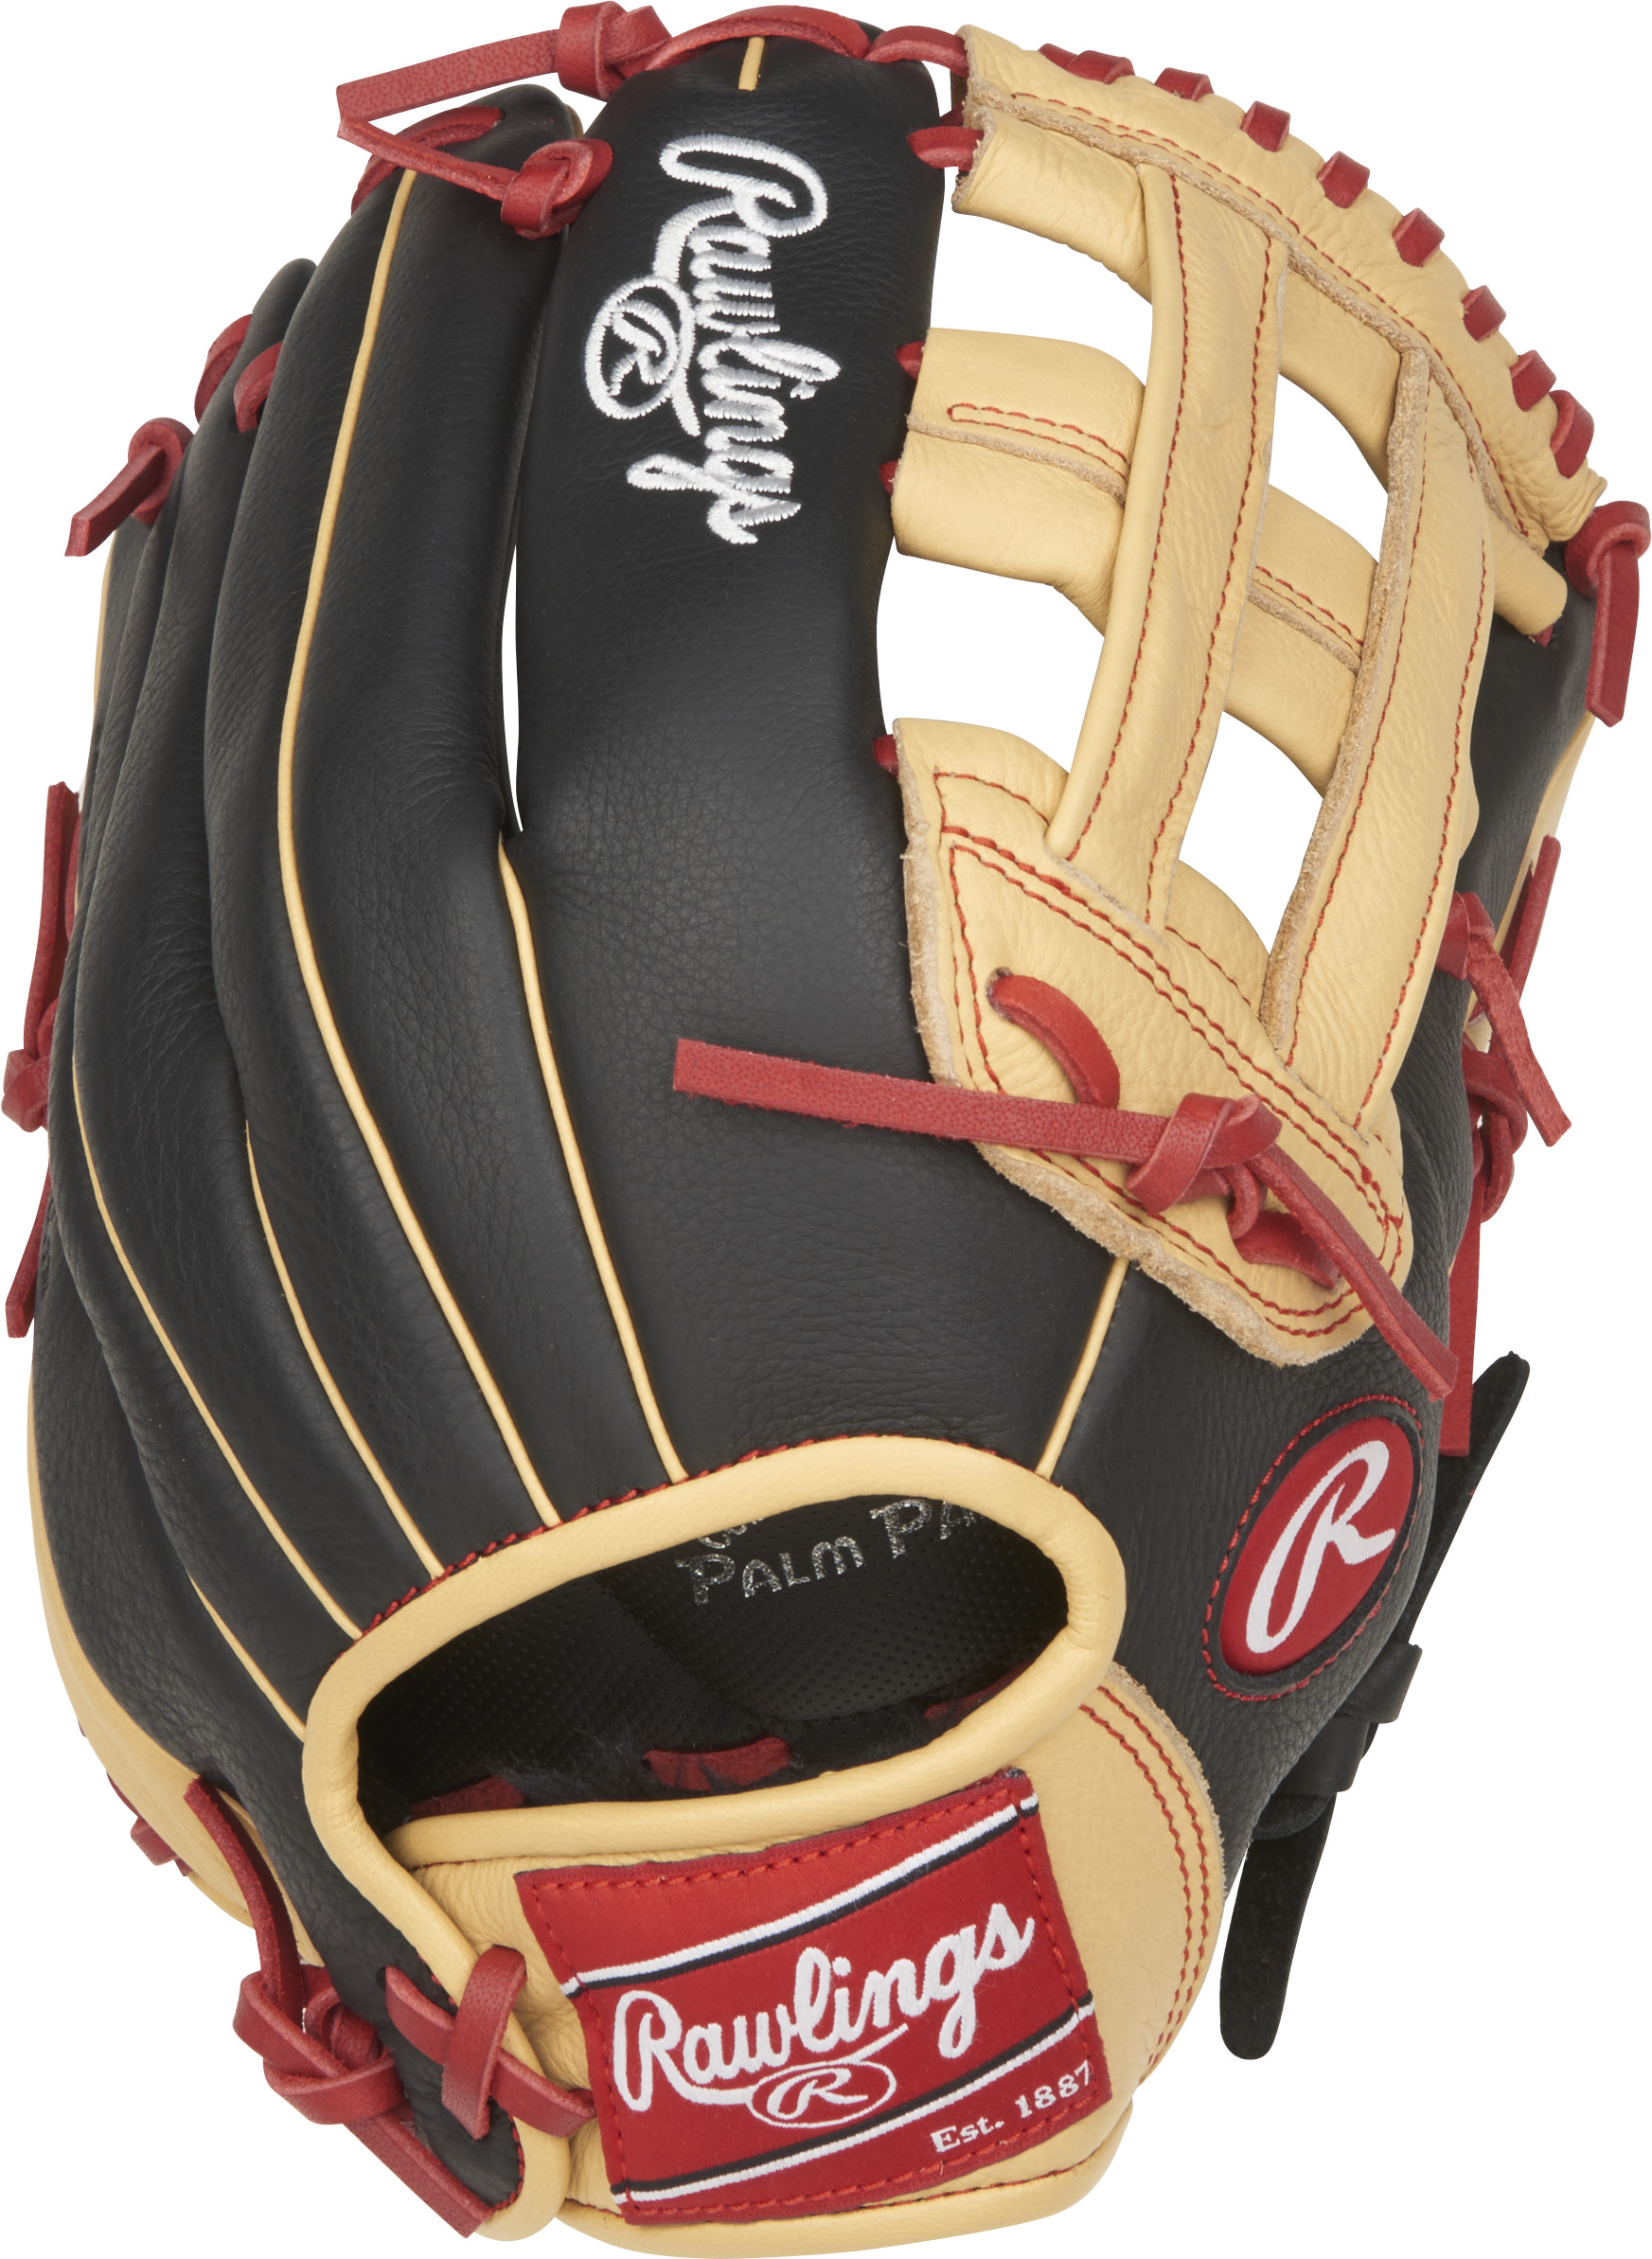 http://www.bestbatdeals.com/images/gloves/rawlings/SPL120BH-2.jpg